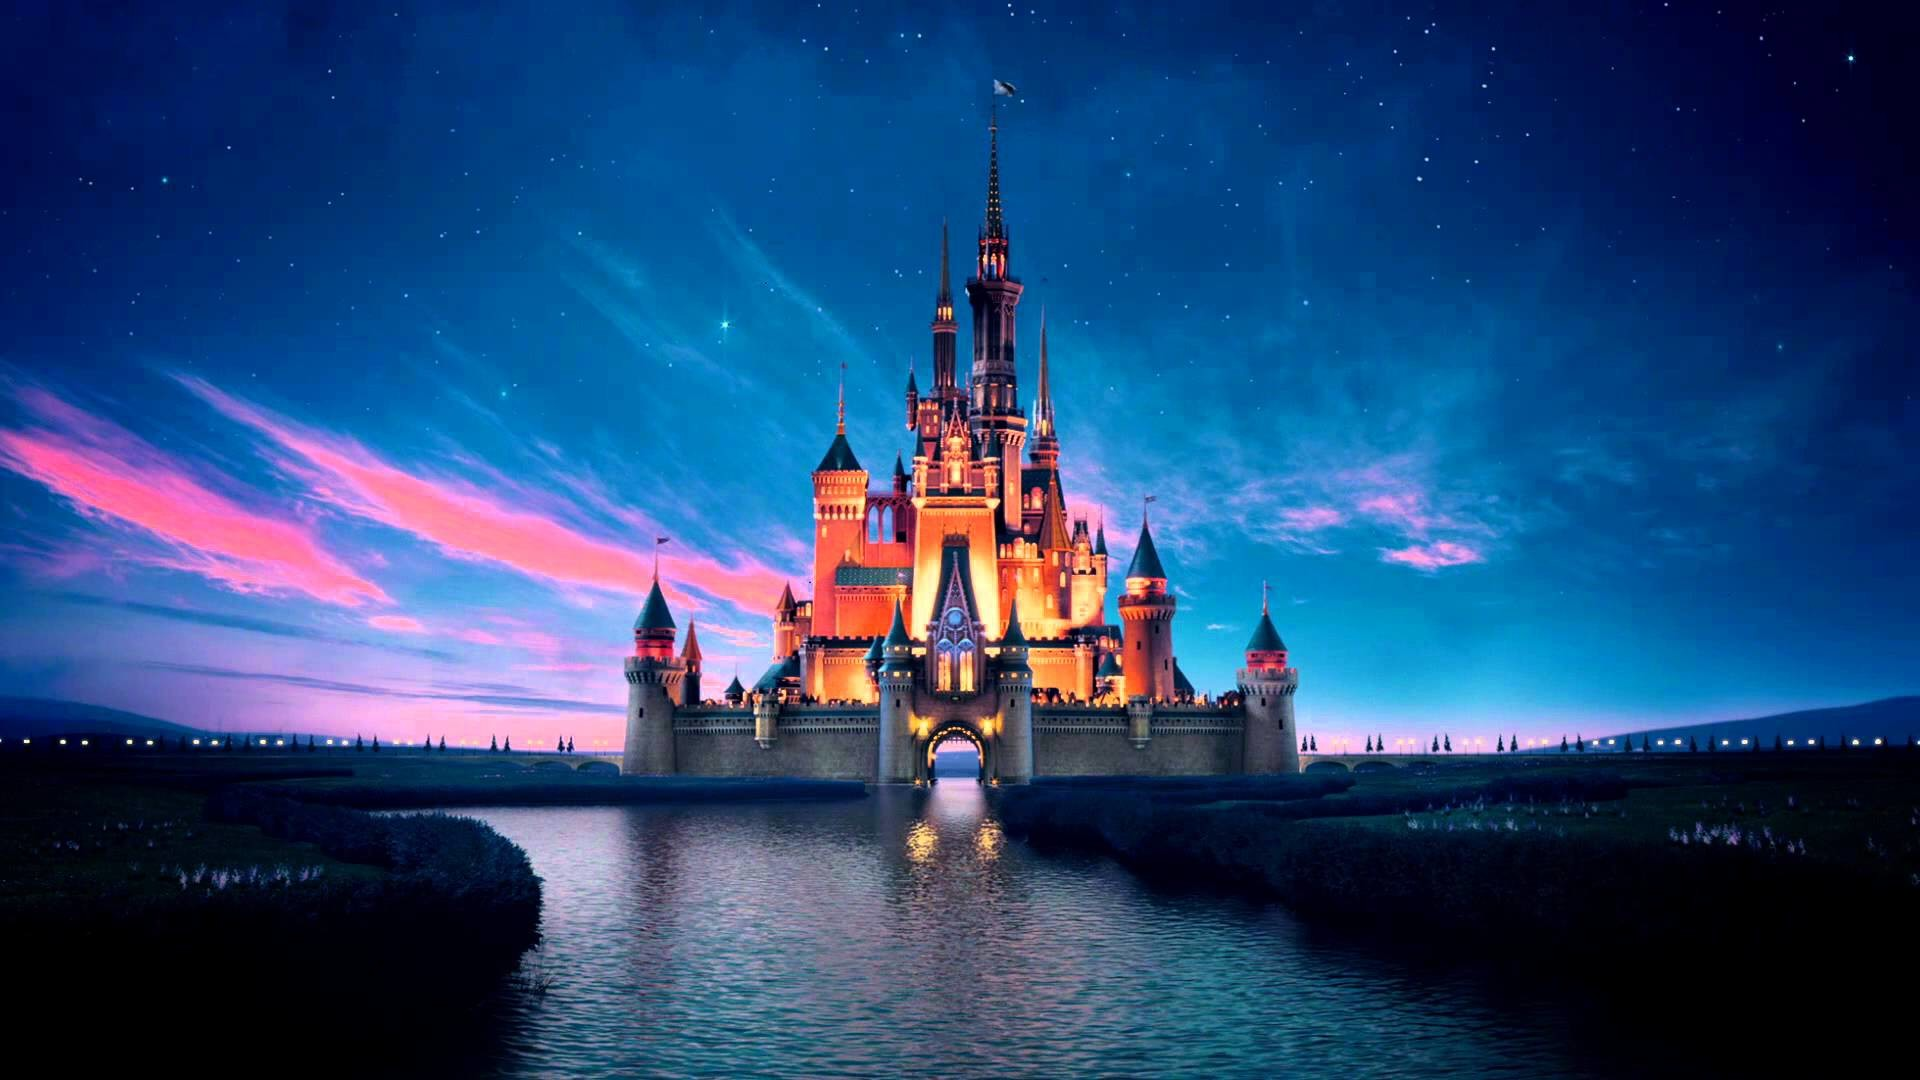 1920x1080 Wallpapers For Disney Castle Background Tumblr